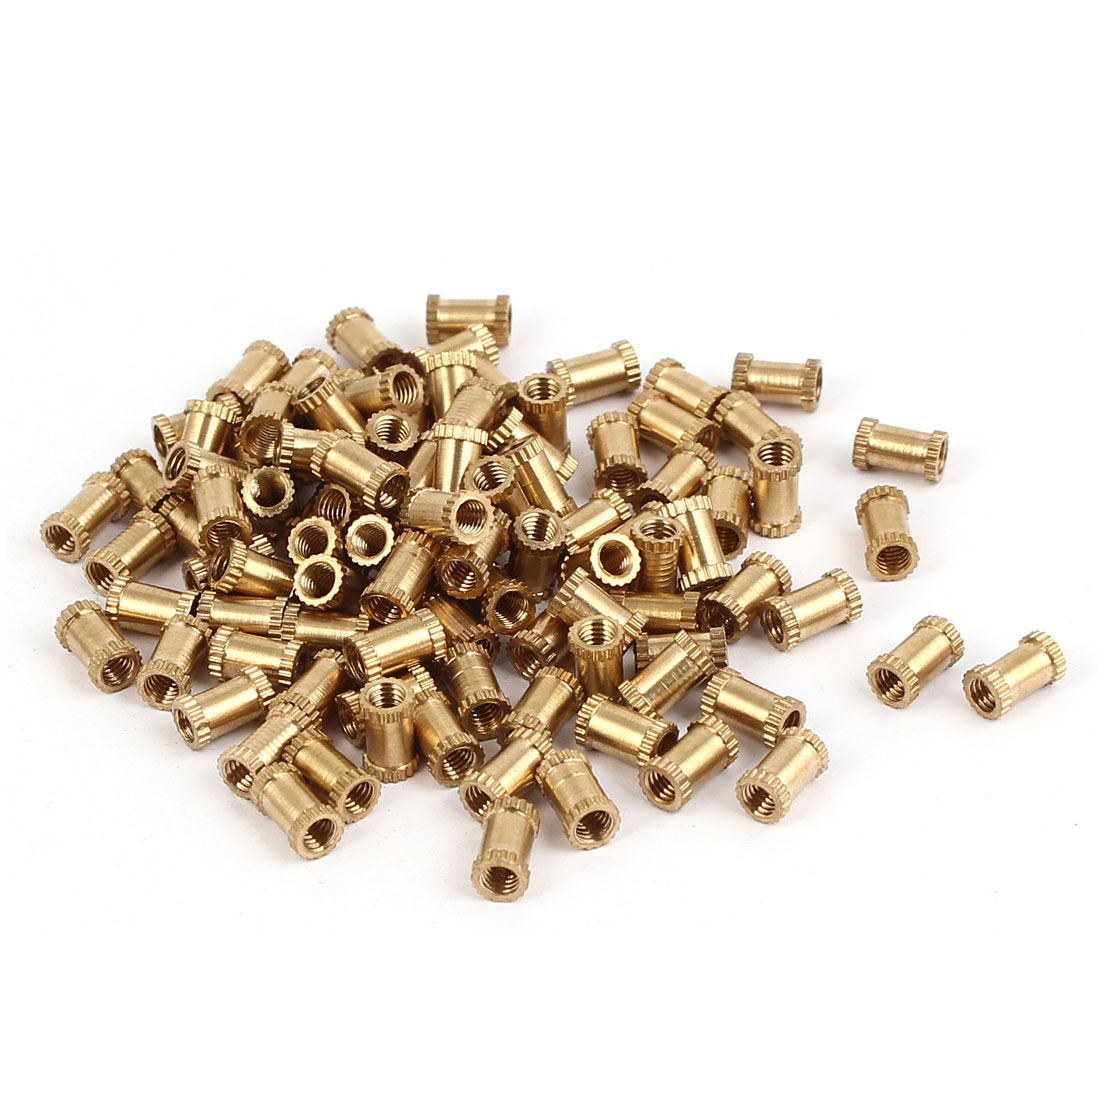 M3 x 7mm x 4.3mm Brass Cylinder Knurled Threaded Insert Embedment Nuts 100PCS